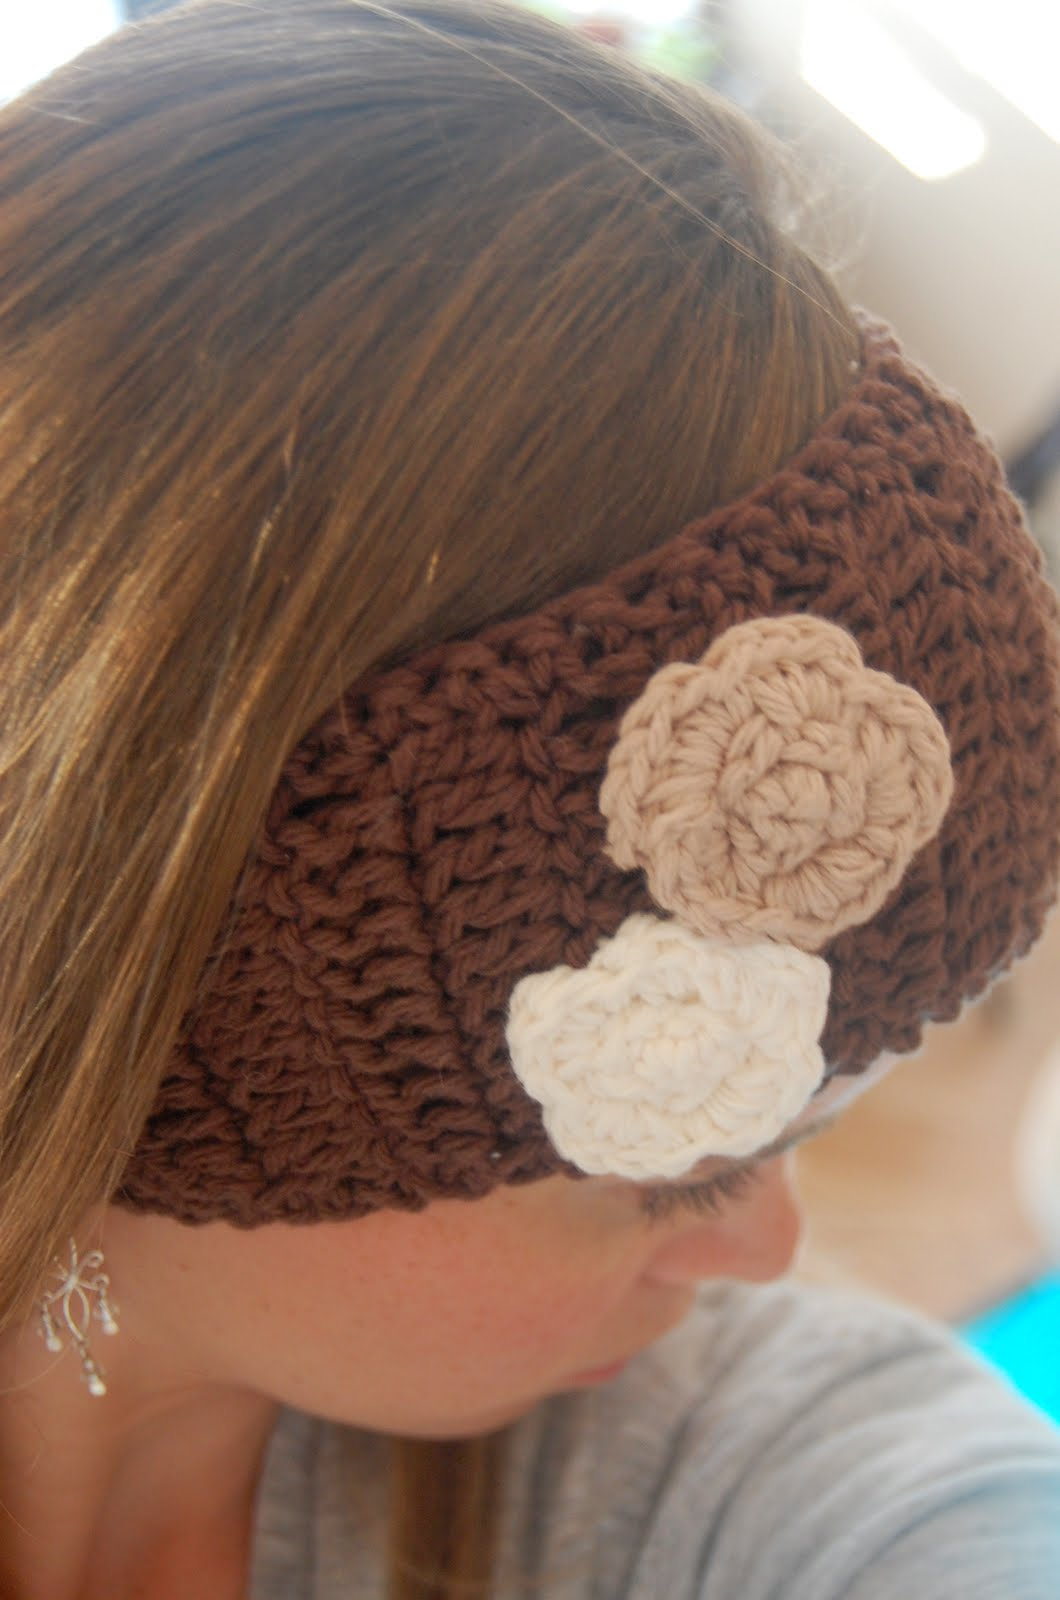 Crochet Pattern For Ear Warmer With Flower : 16 Crochet Ear Warmer Patterns Guide Patterns